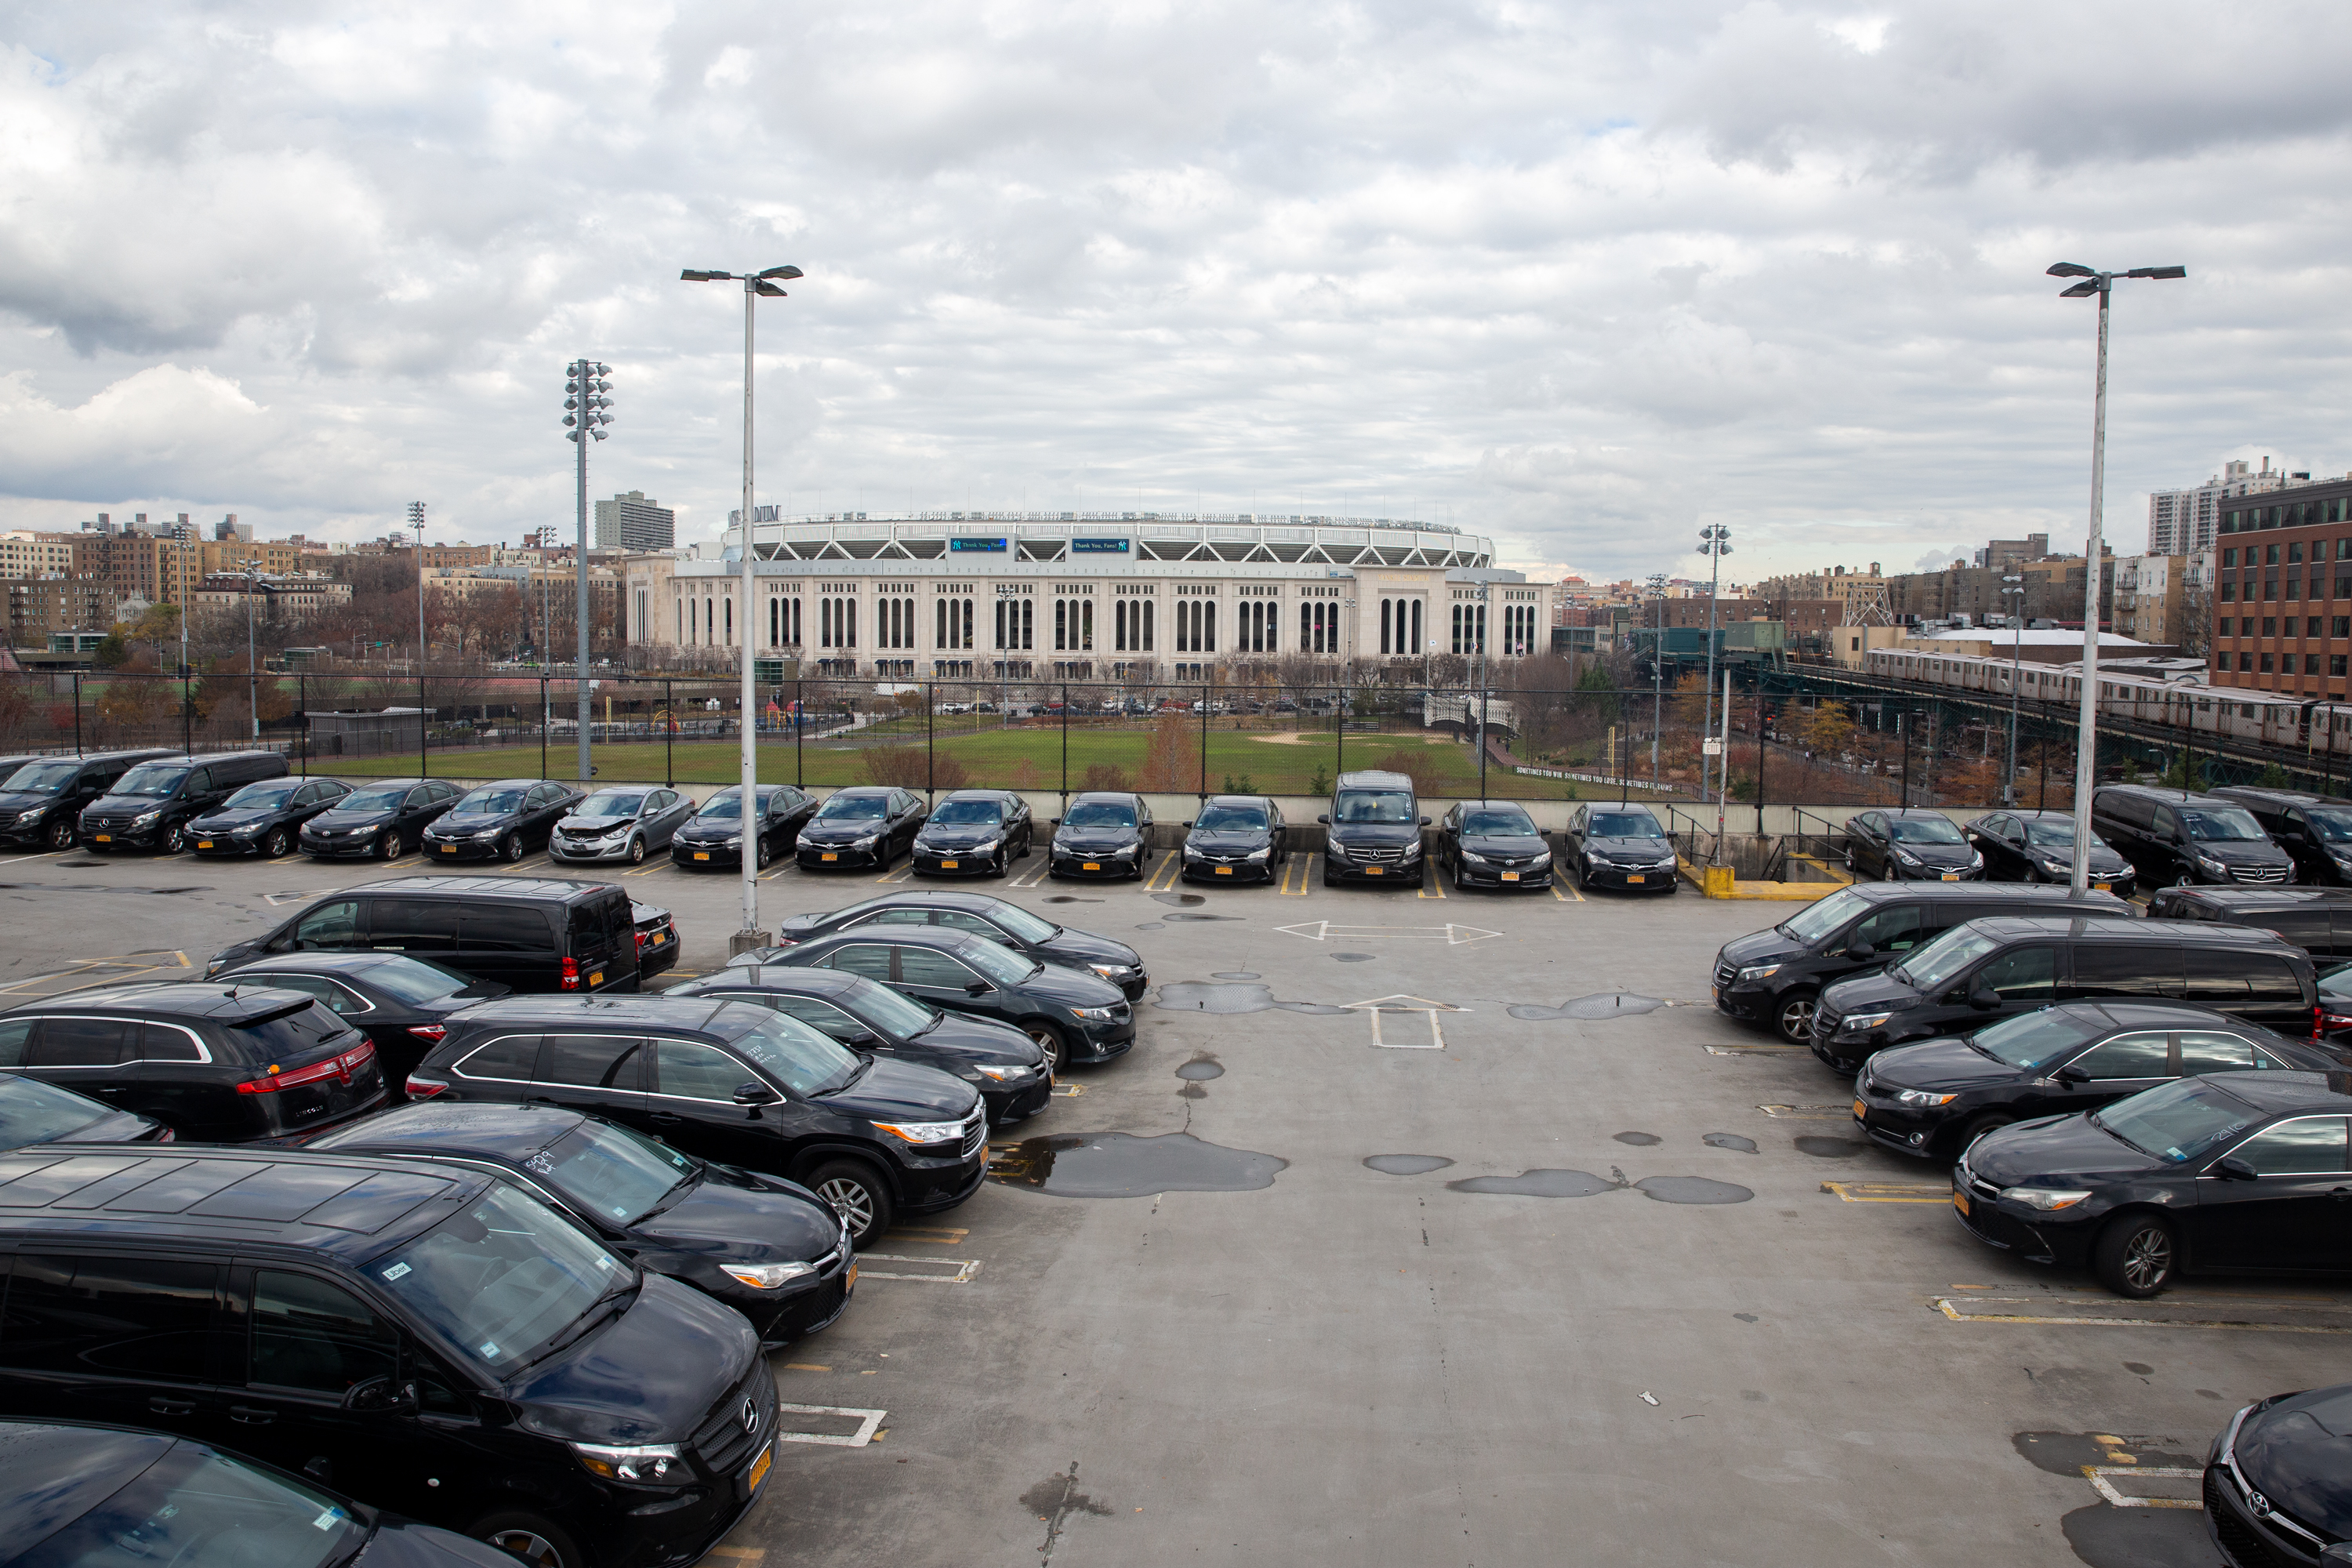 A multi-level parking garage looks over the southern end of Yankee Stadium.